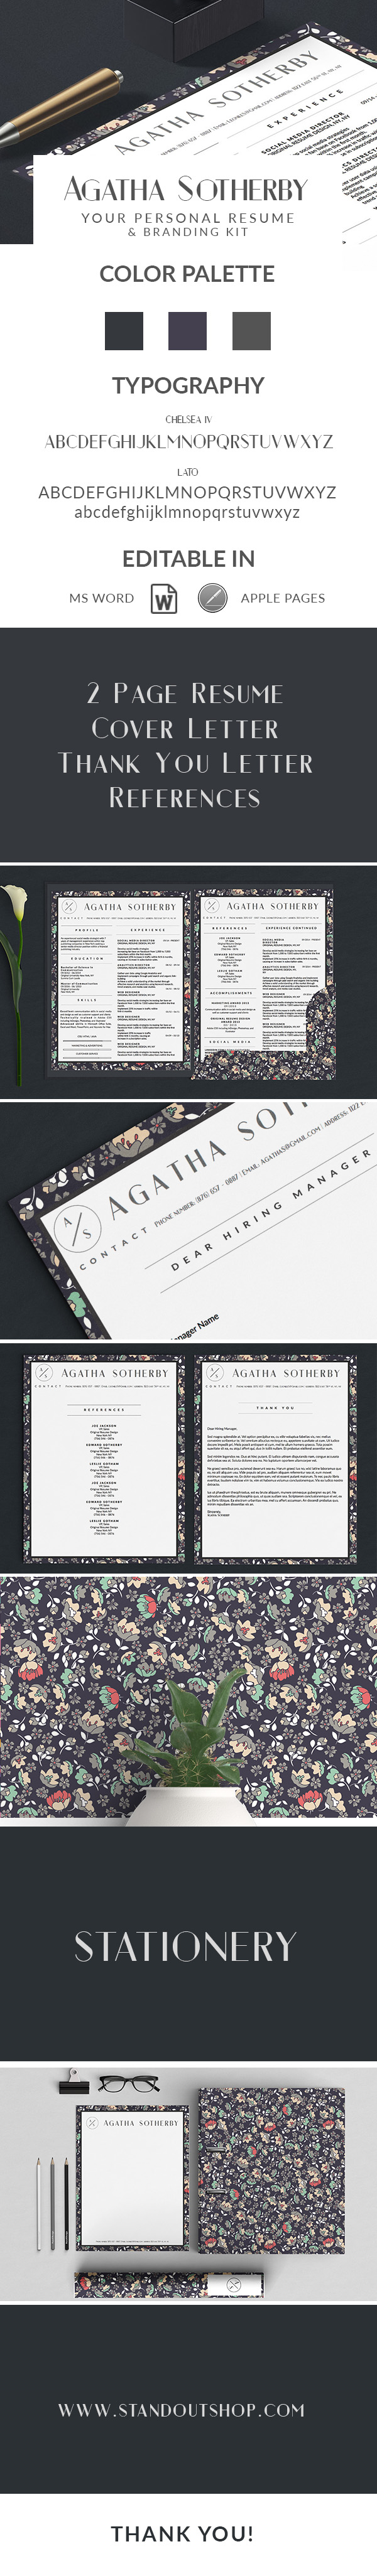 AGATHA SOTHERBY BRANDING Agatha Sotherby Resume Template